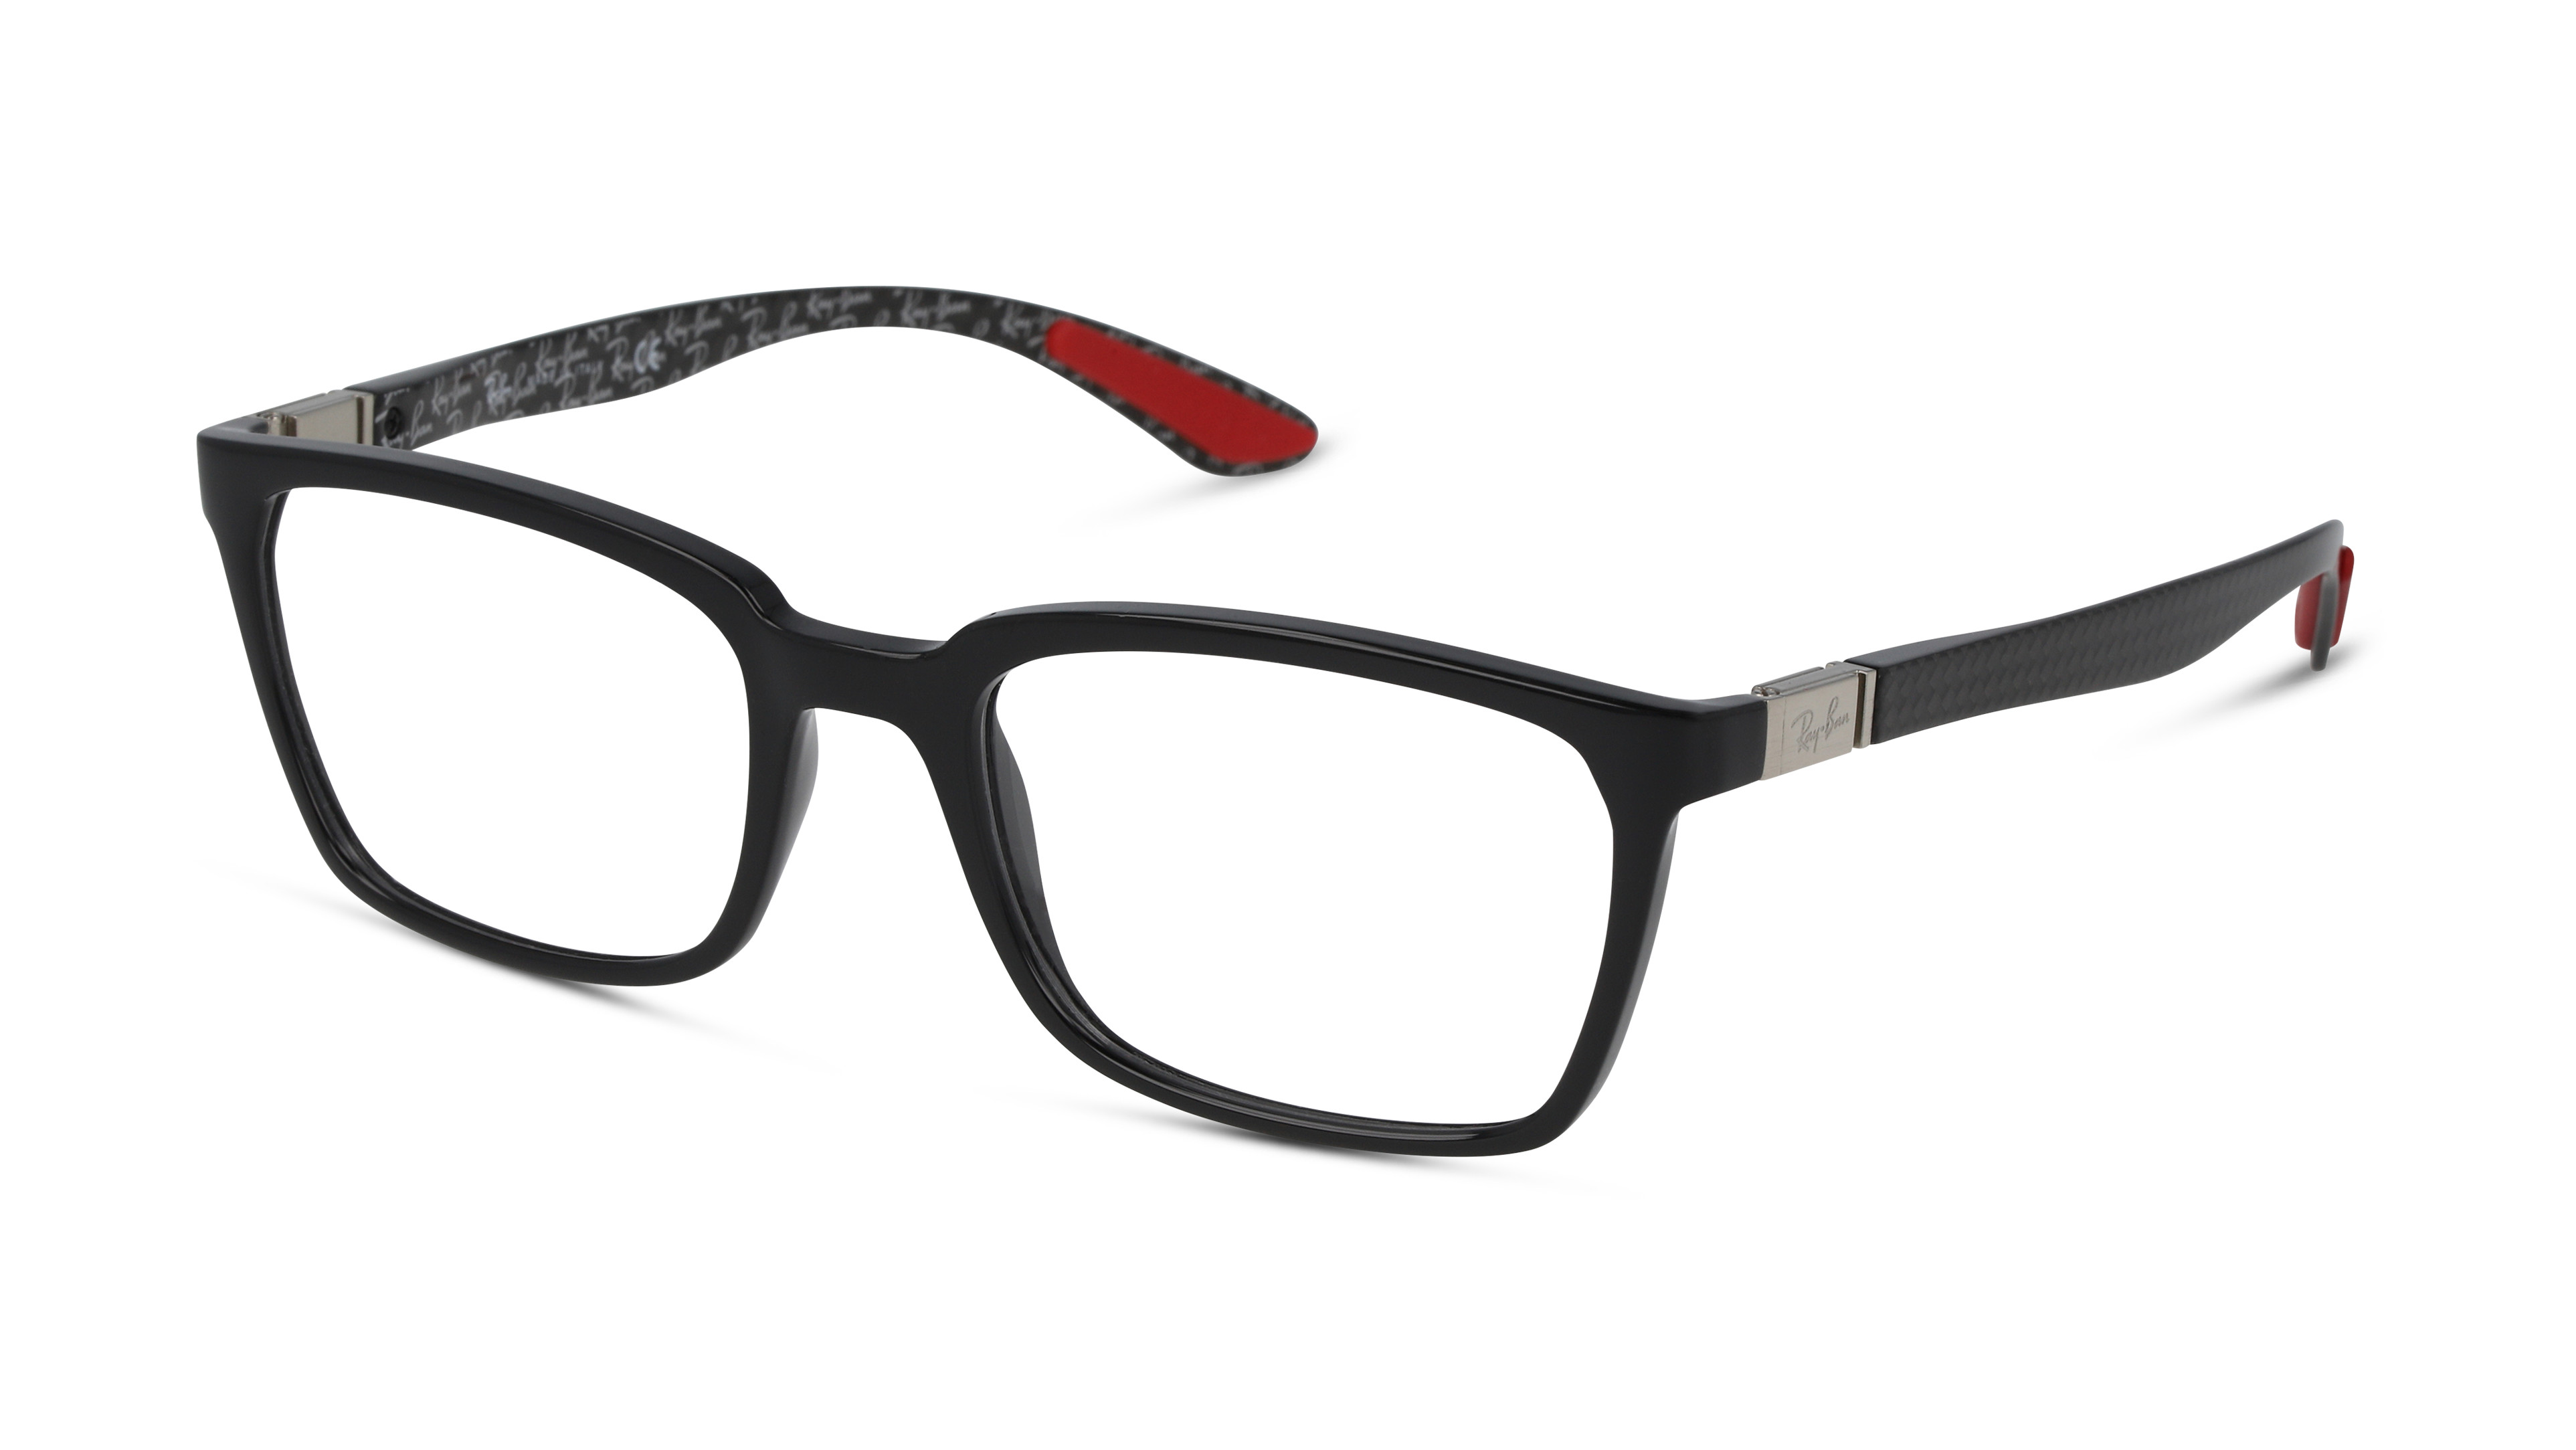 8056597245074-angle-Ray-Ban-brillenfassung-0rx8906-shiny-black